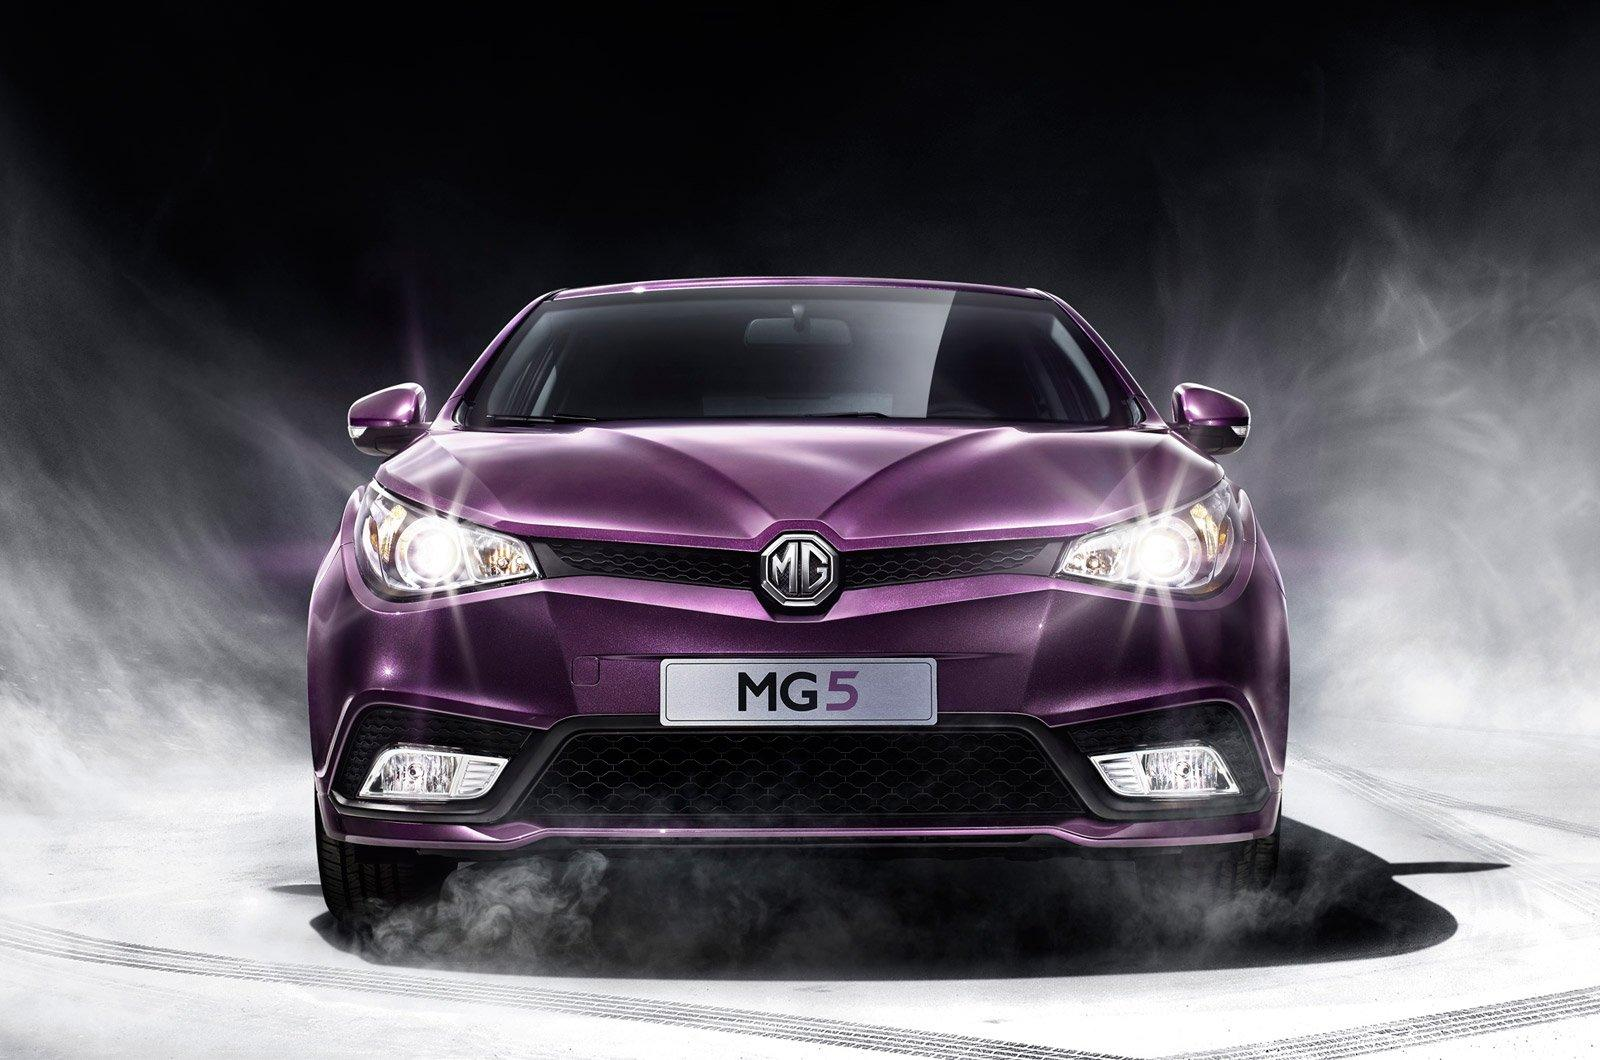 MG officially unveiled the 2013 MG5